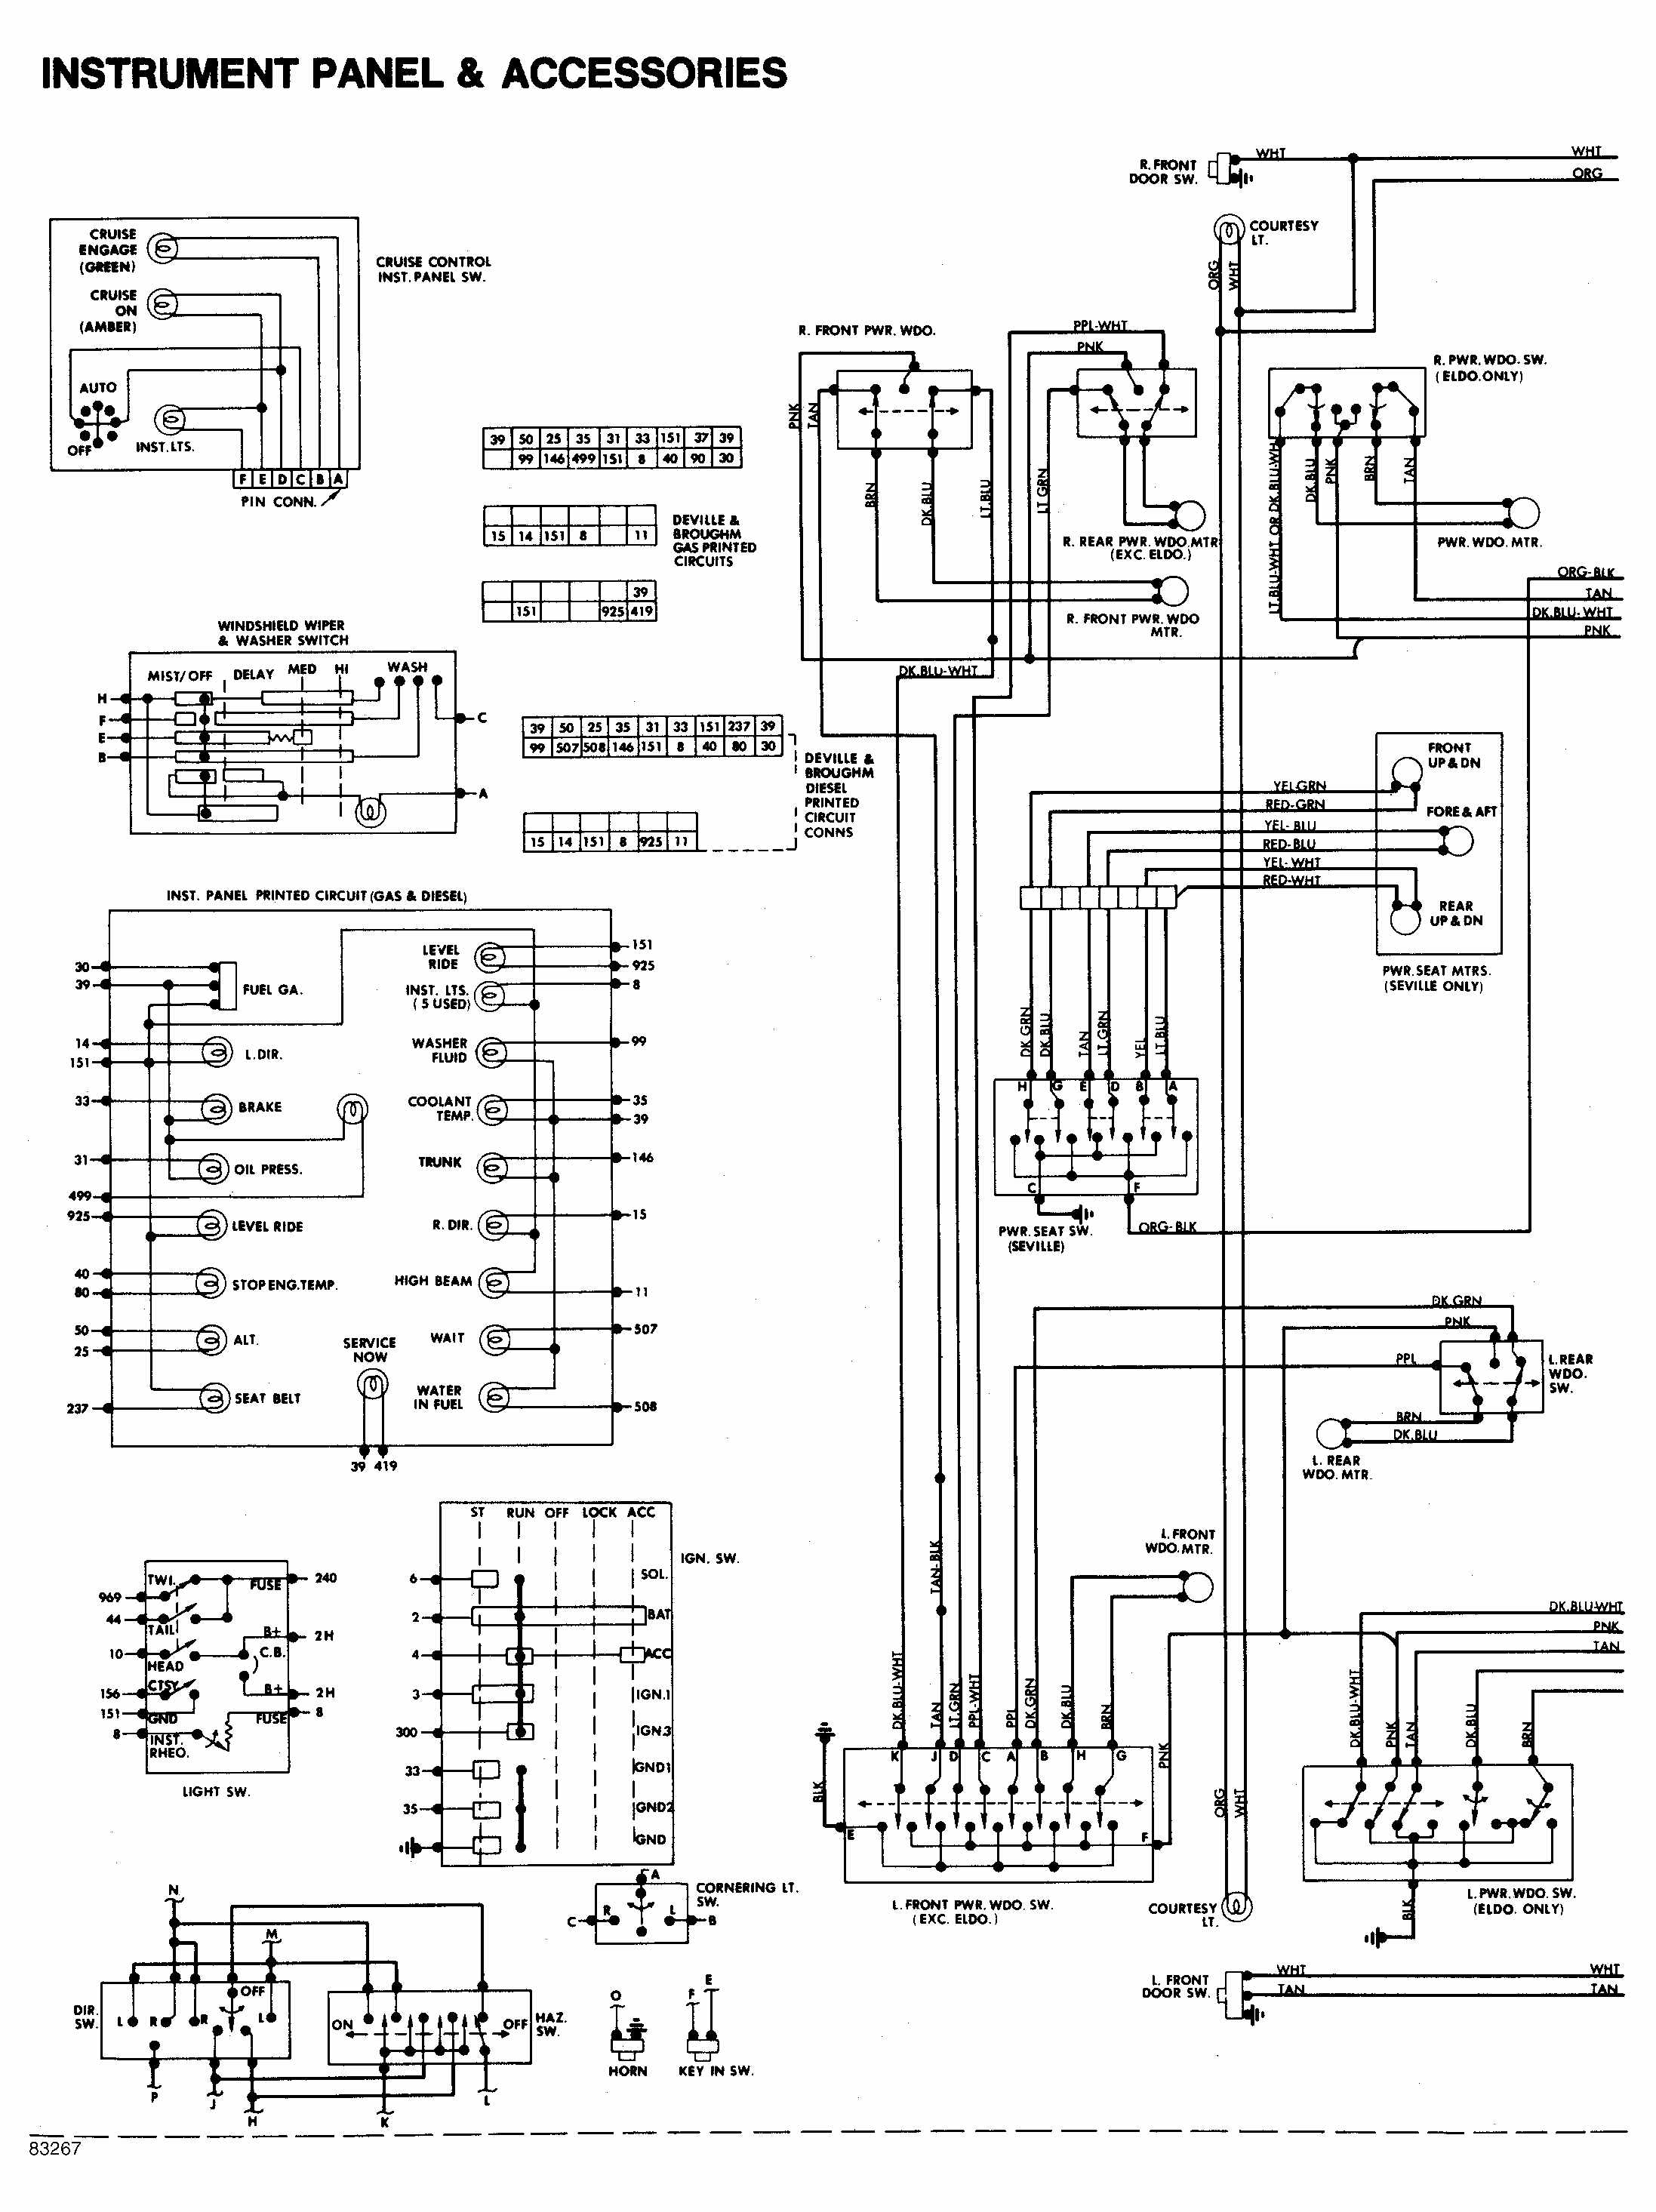 Wiring Diagram For El Camino